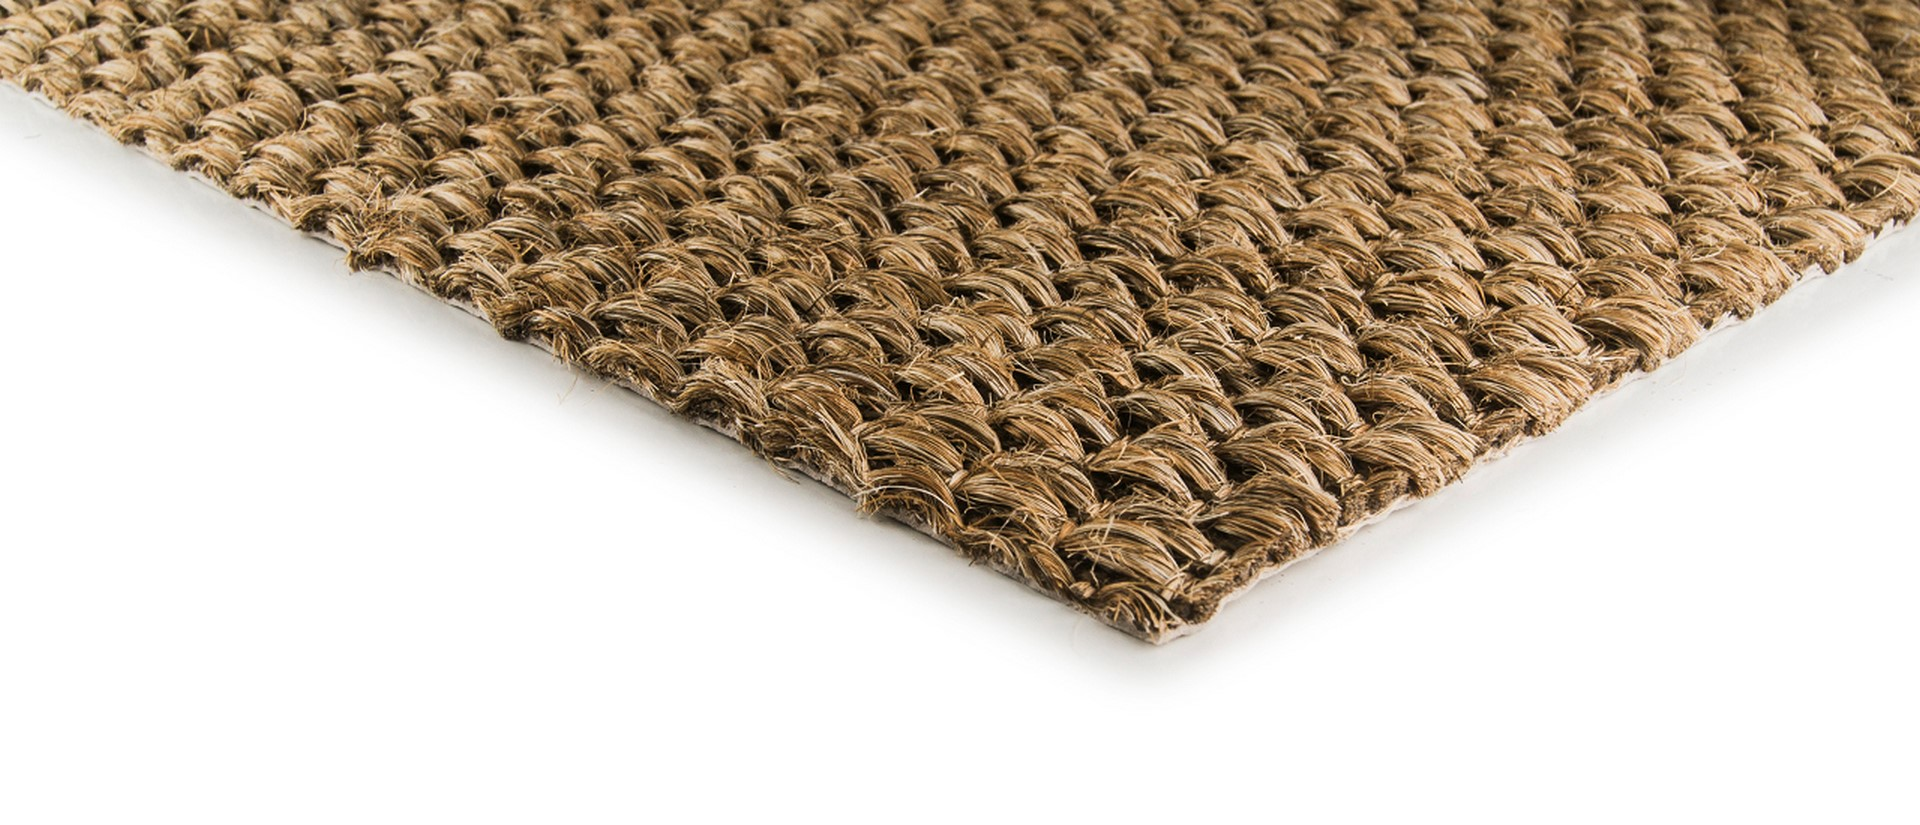 Natural Carpets Pure Wool Sisal Coir And Silk Itc